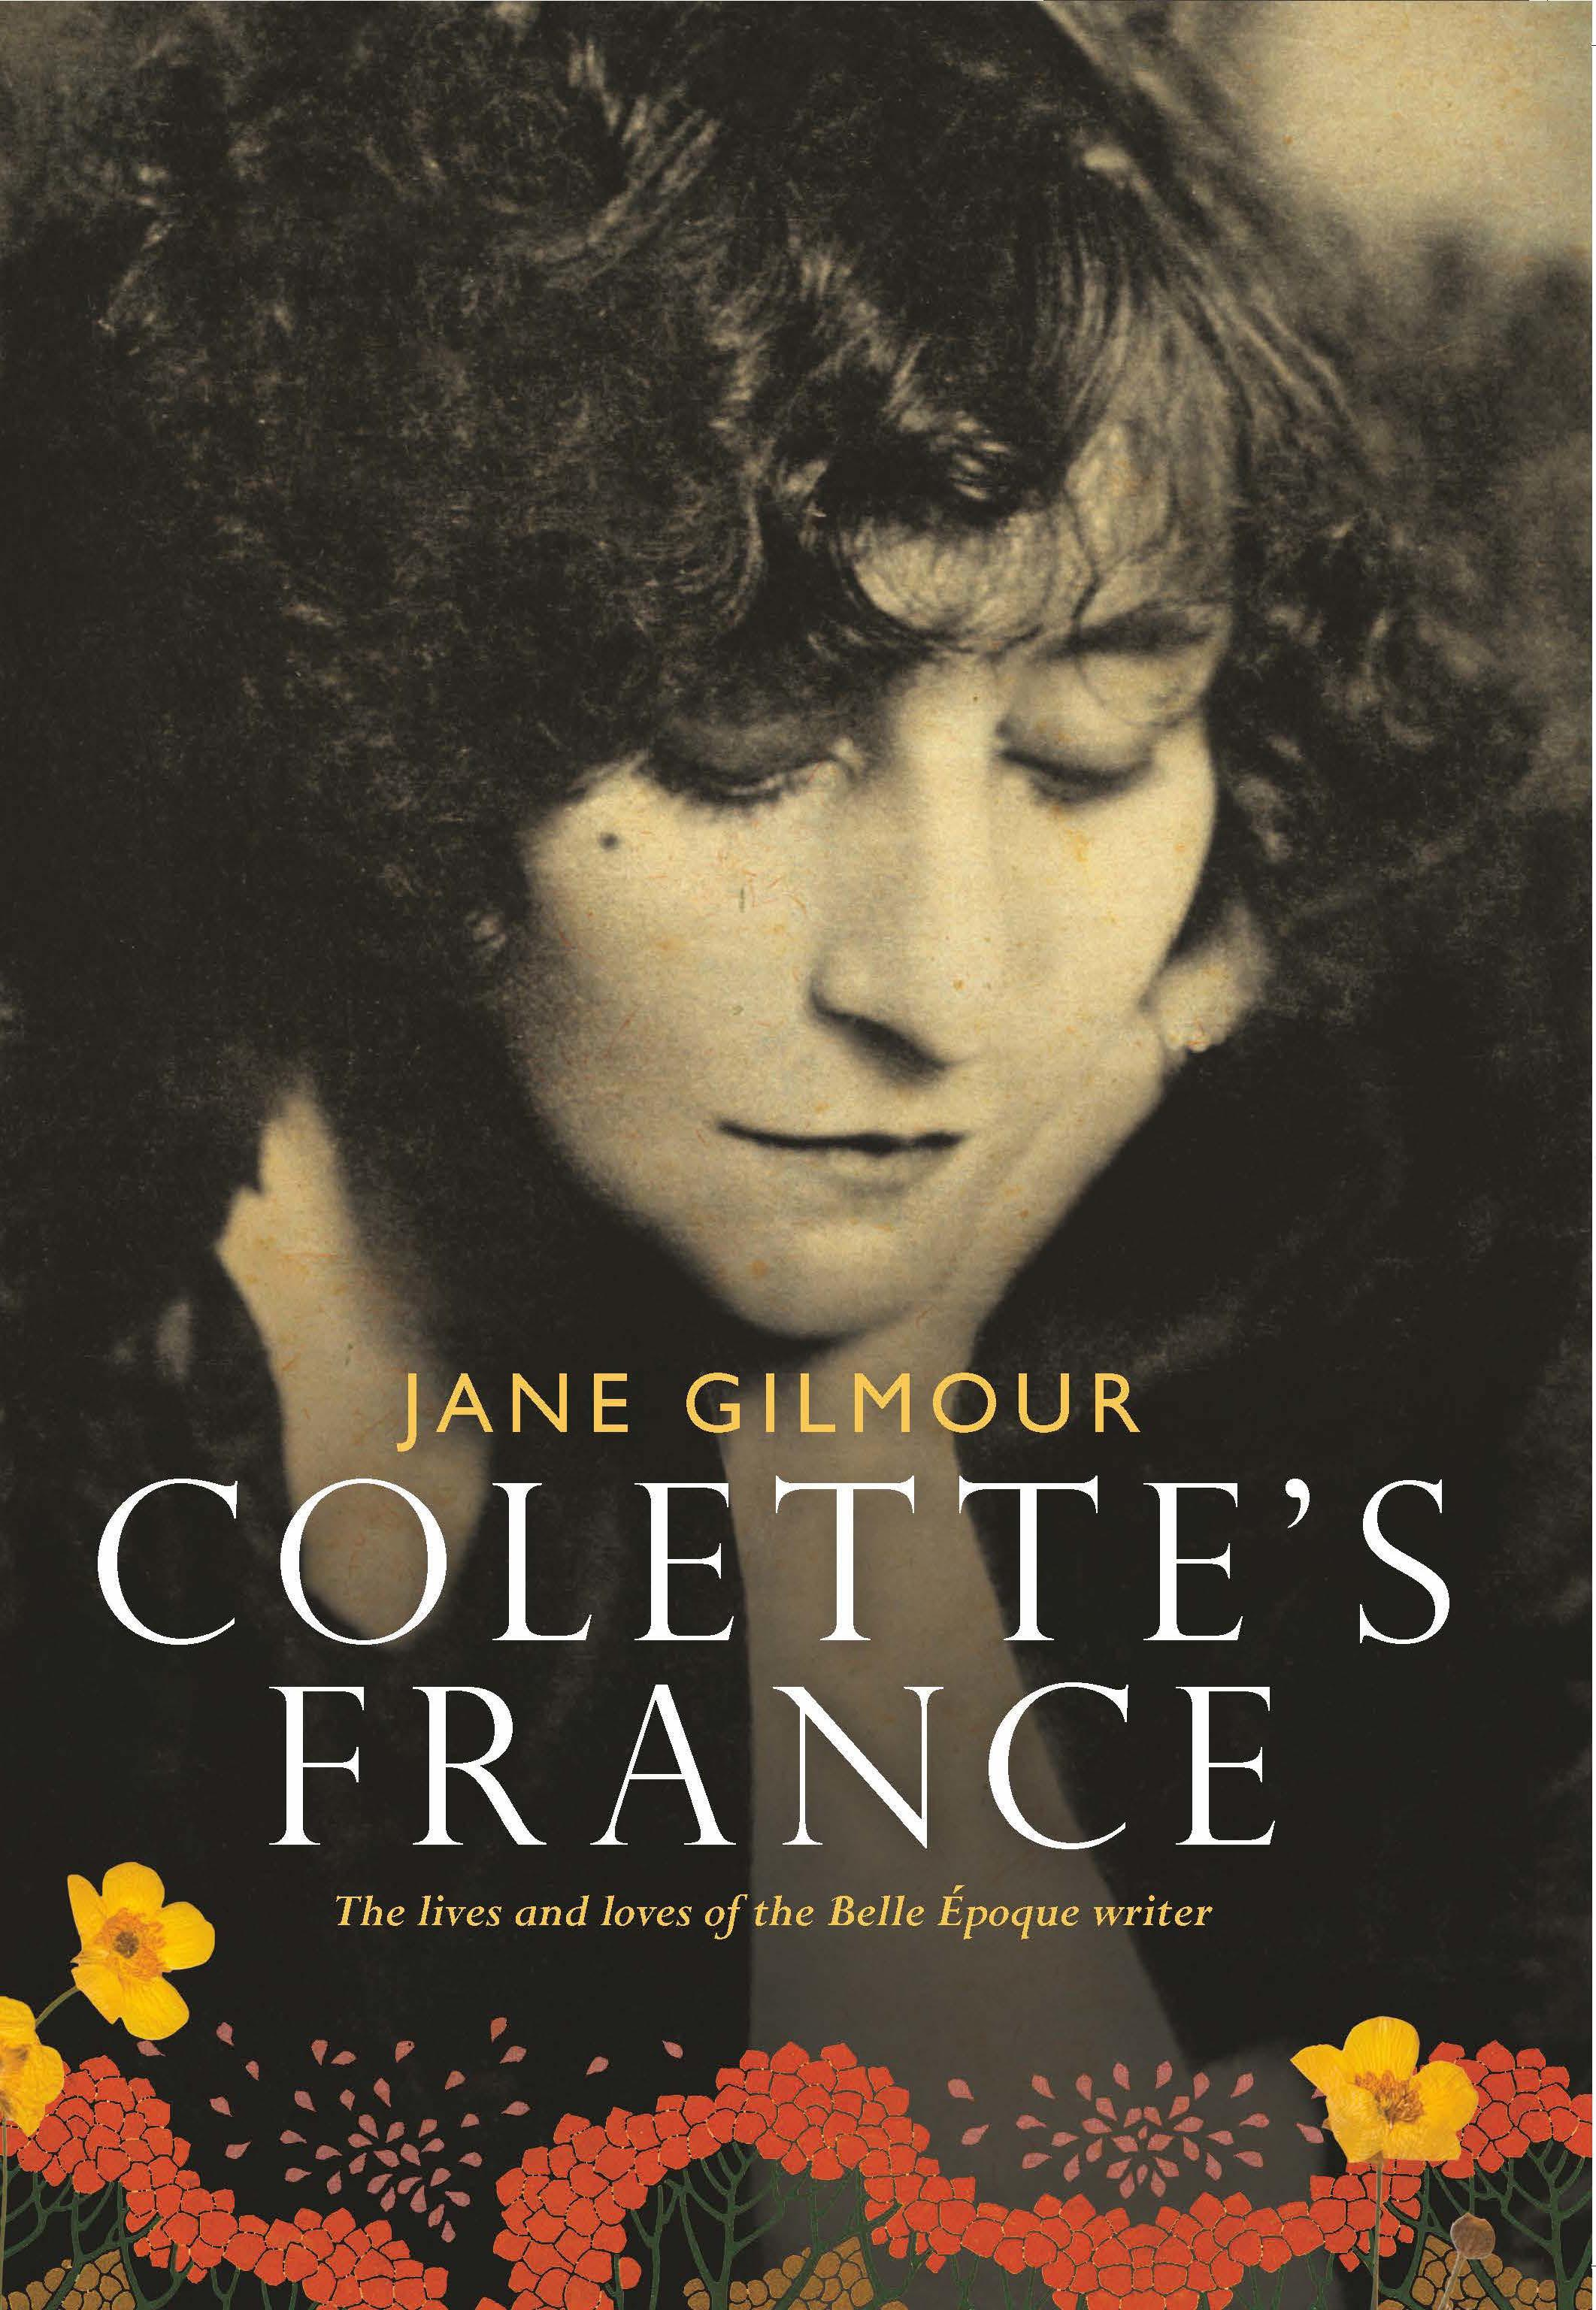 Colette's France: The lives and loves of the Belle Epoque writer